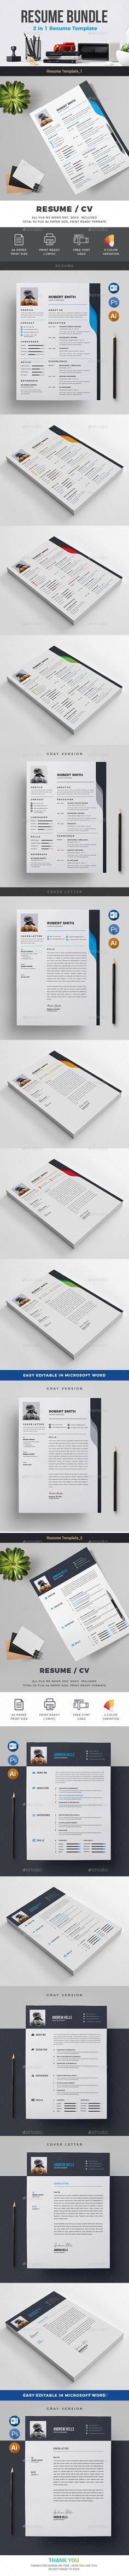 Resume & Cover Letter Big Bundle | Resume cover letters, Template ...